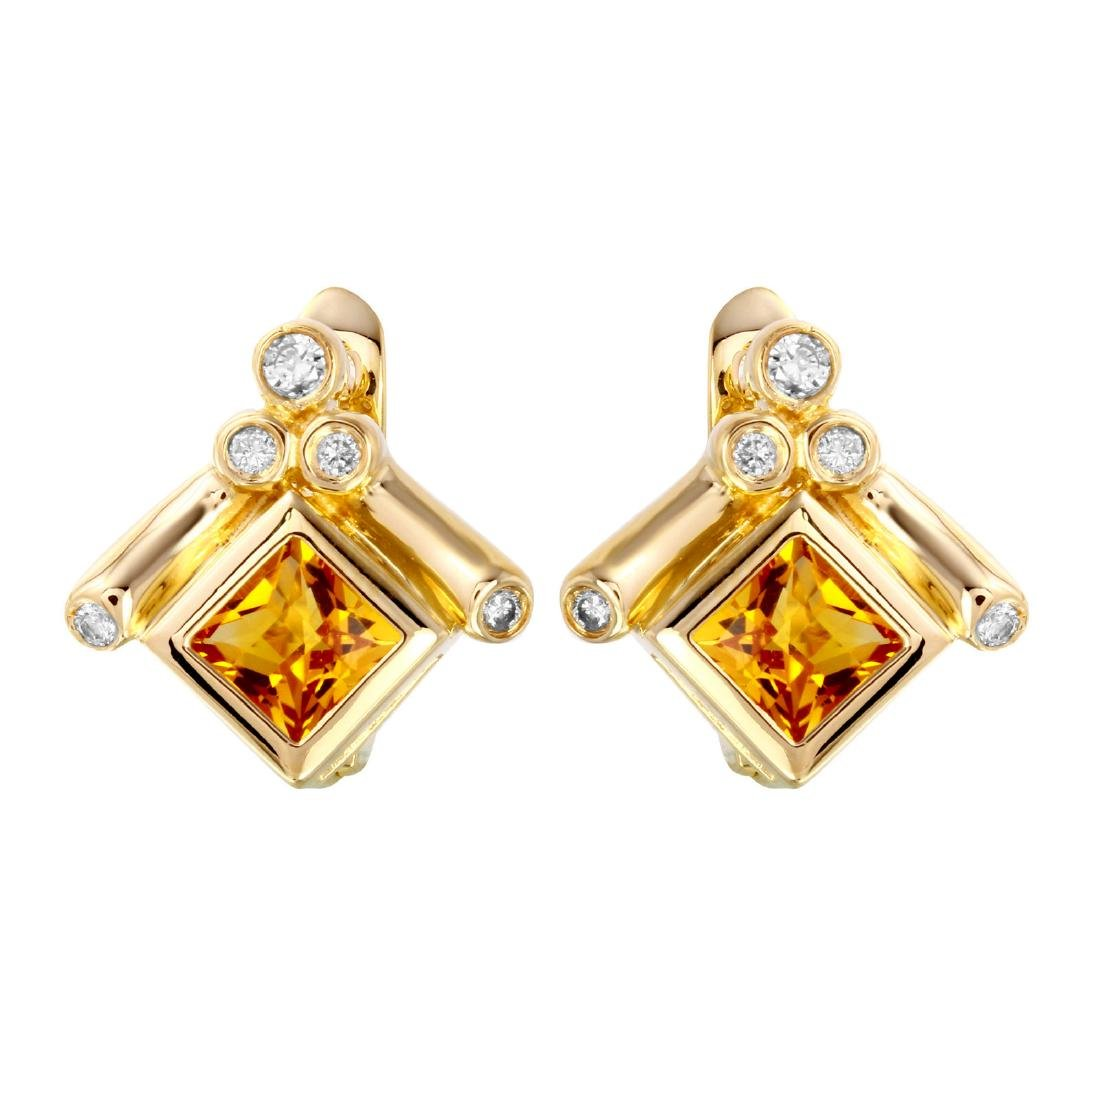 14KT Yellow Gold Citrine & Diamond Earrings